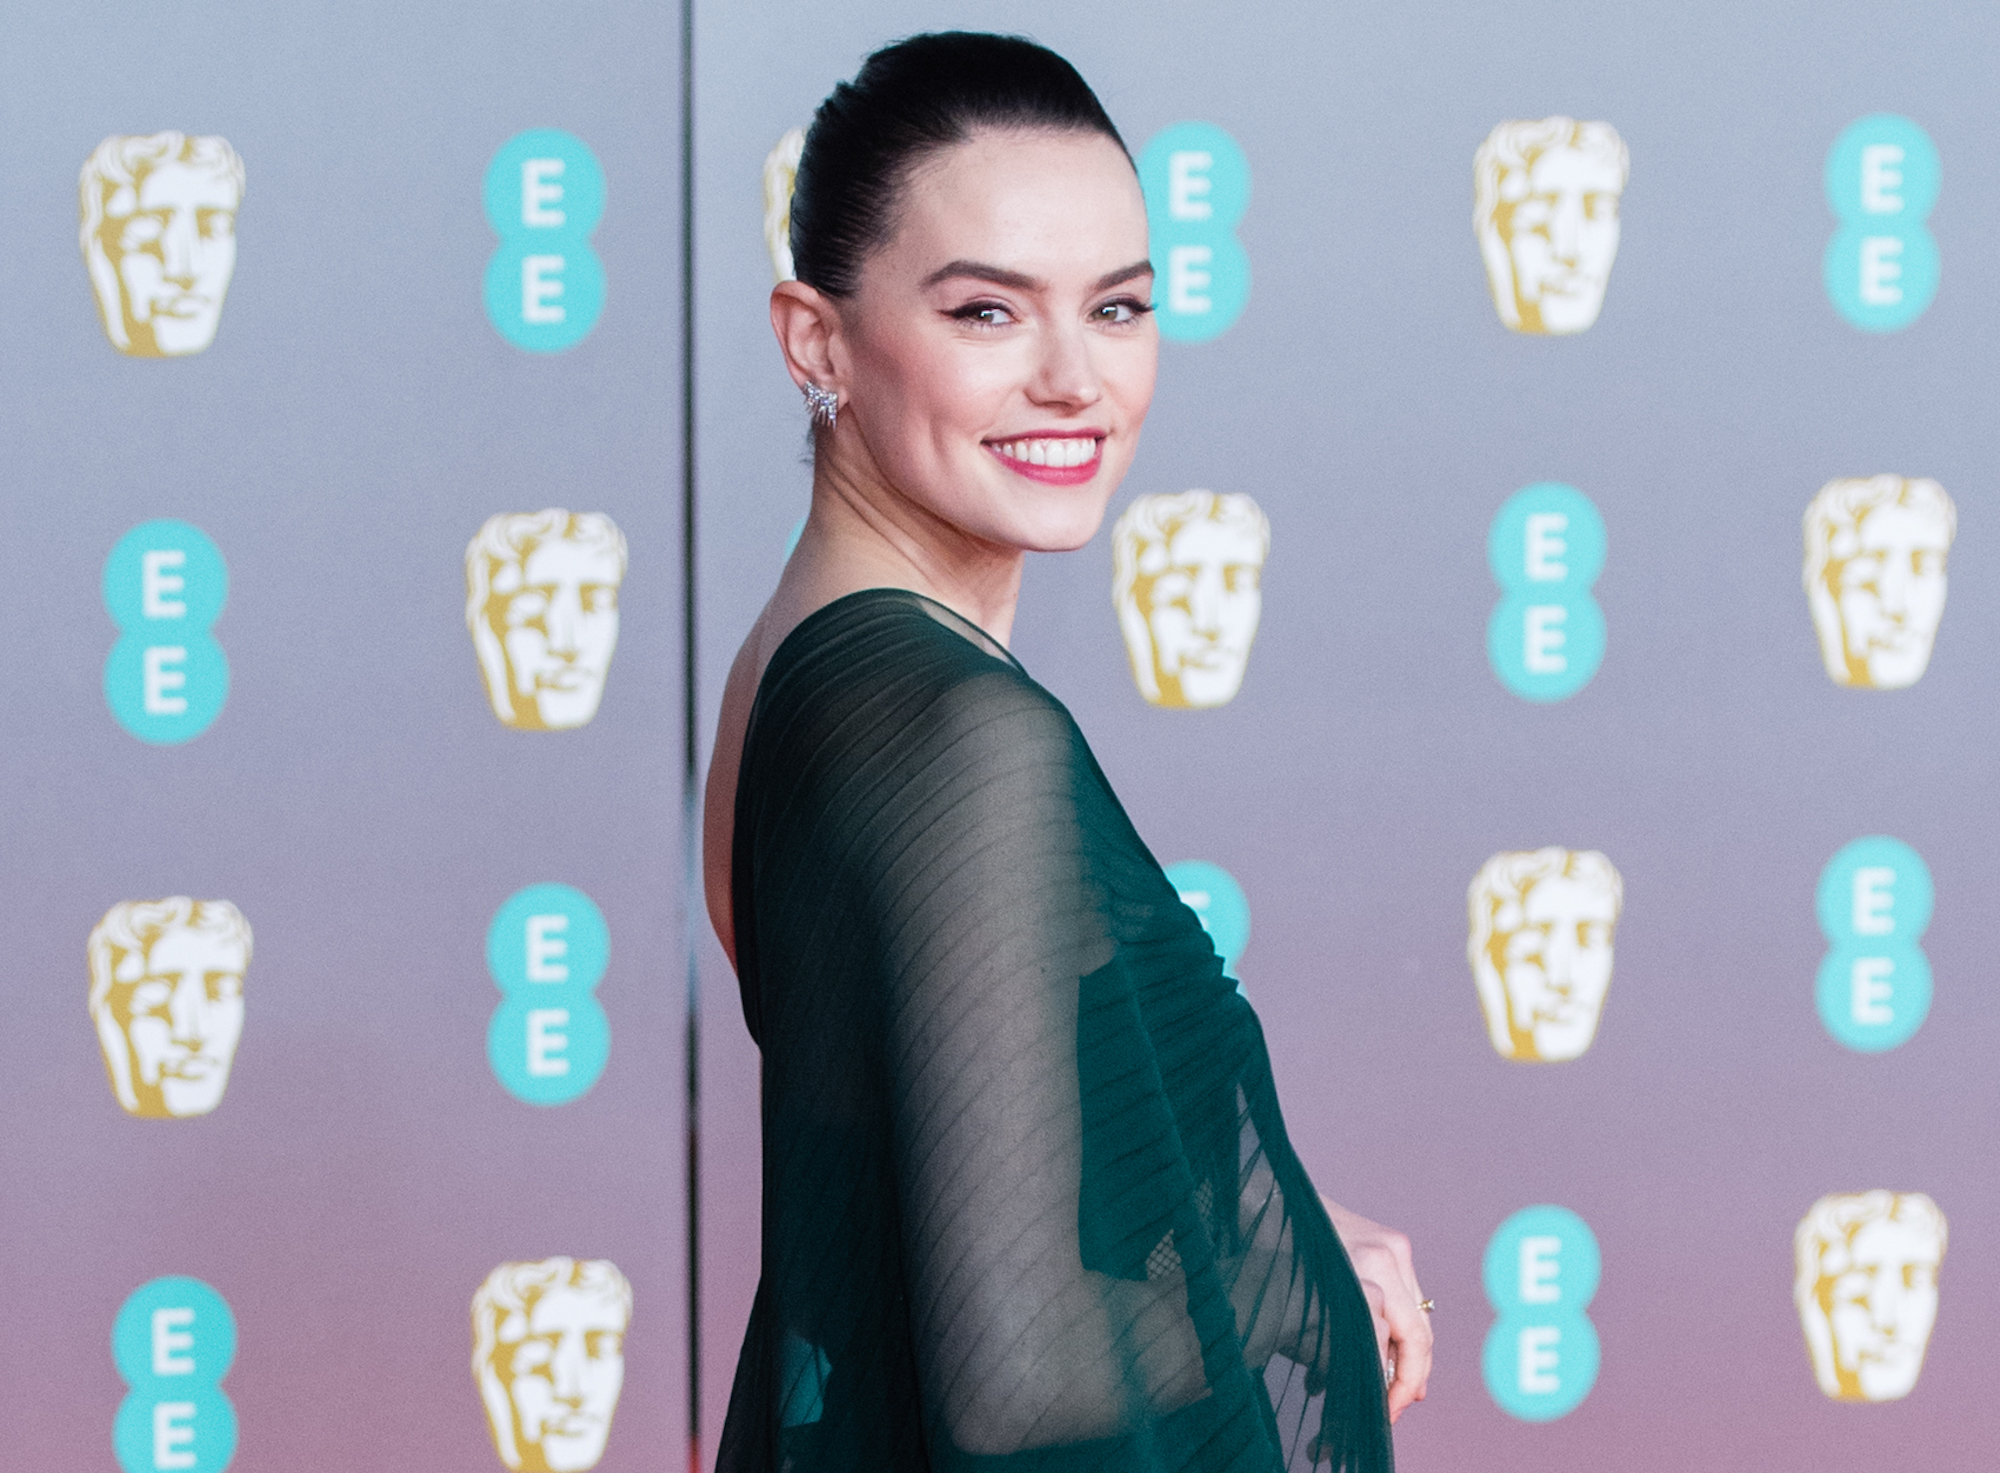 Daisy Ridley at the EE British Academy Film Awards 2020 on Feb. 02, 2020.